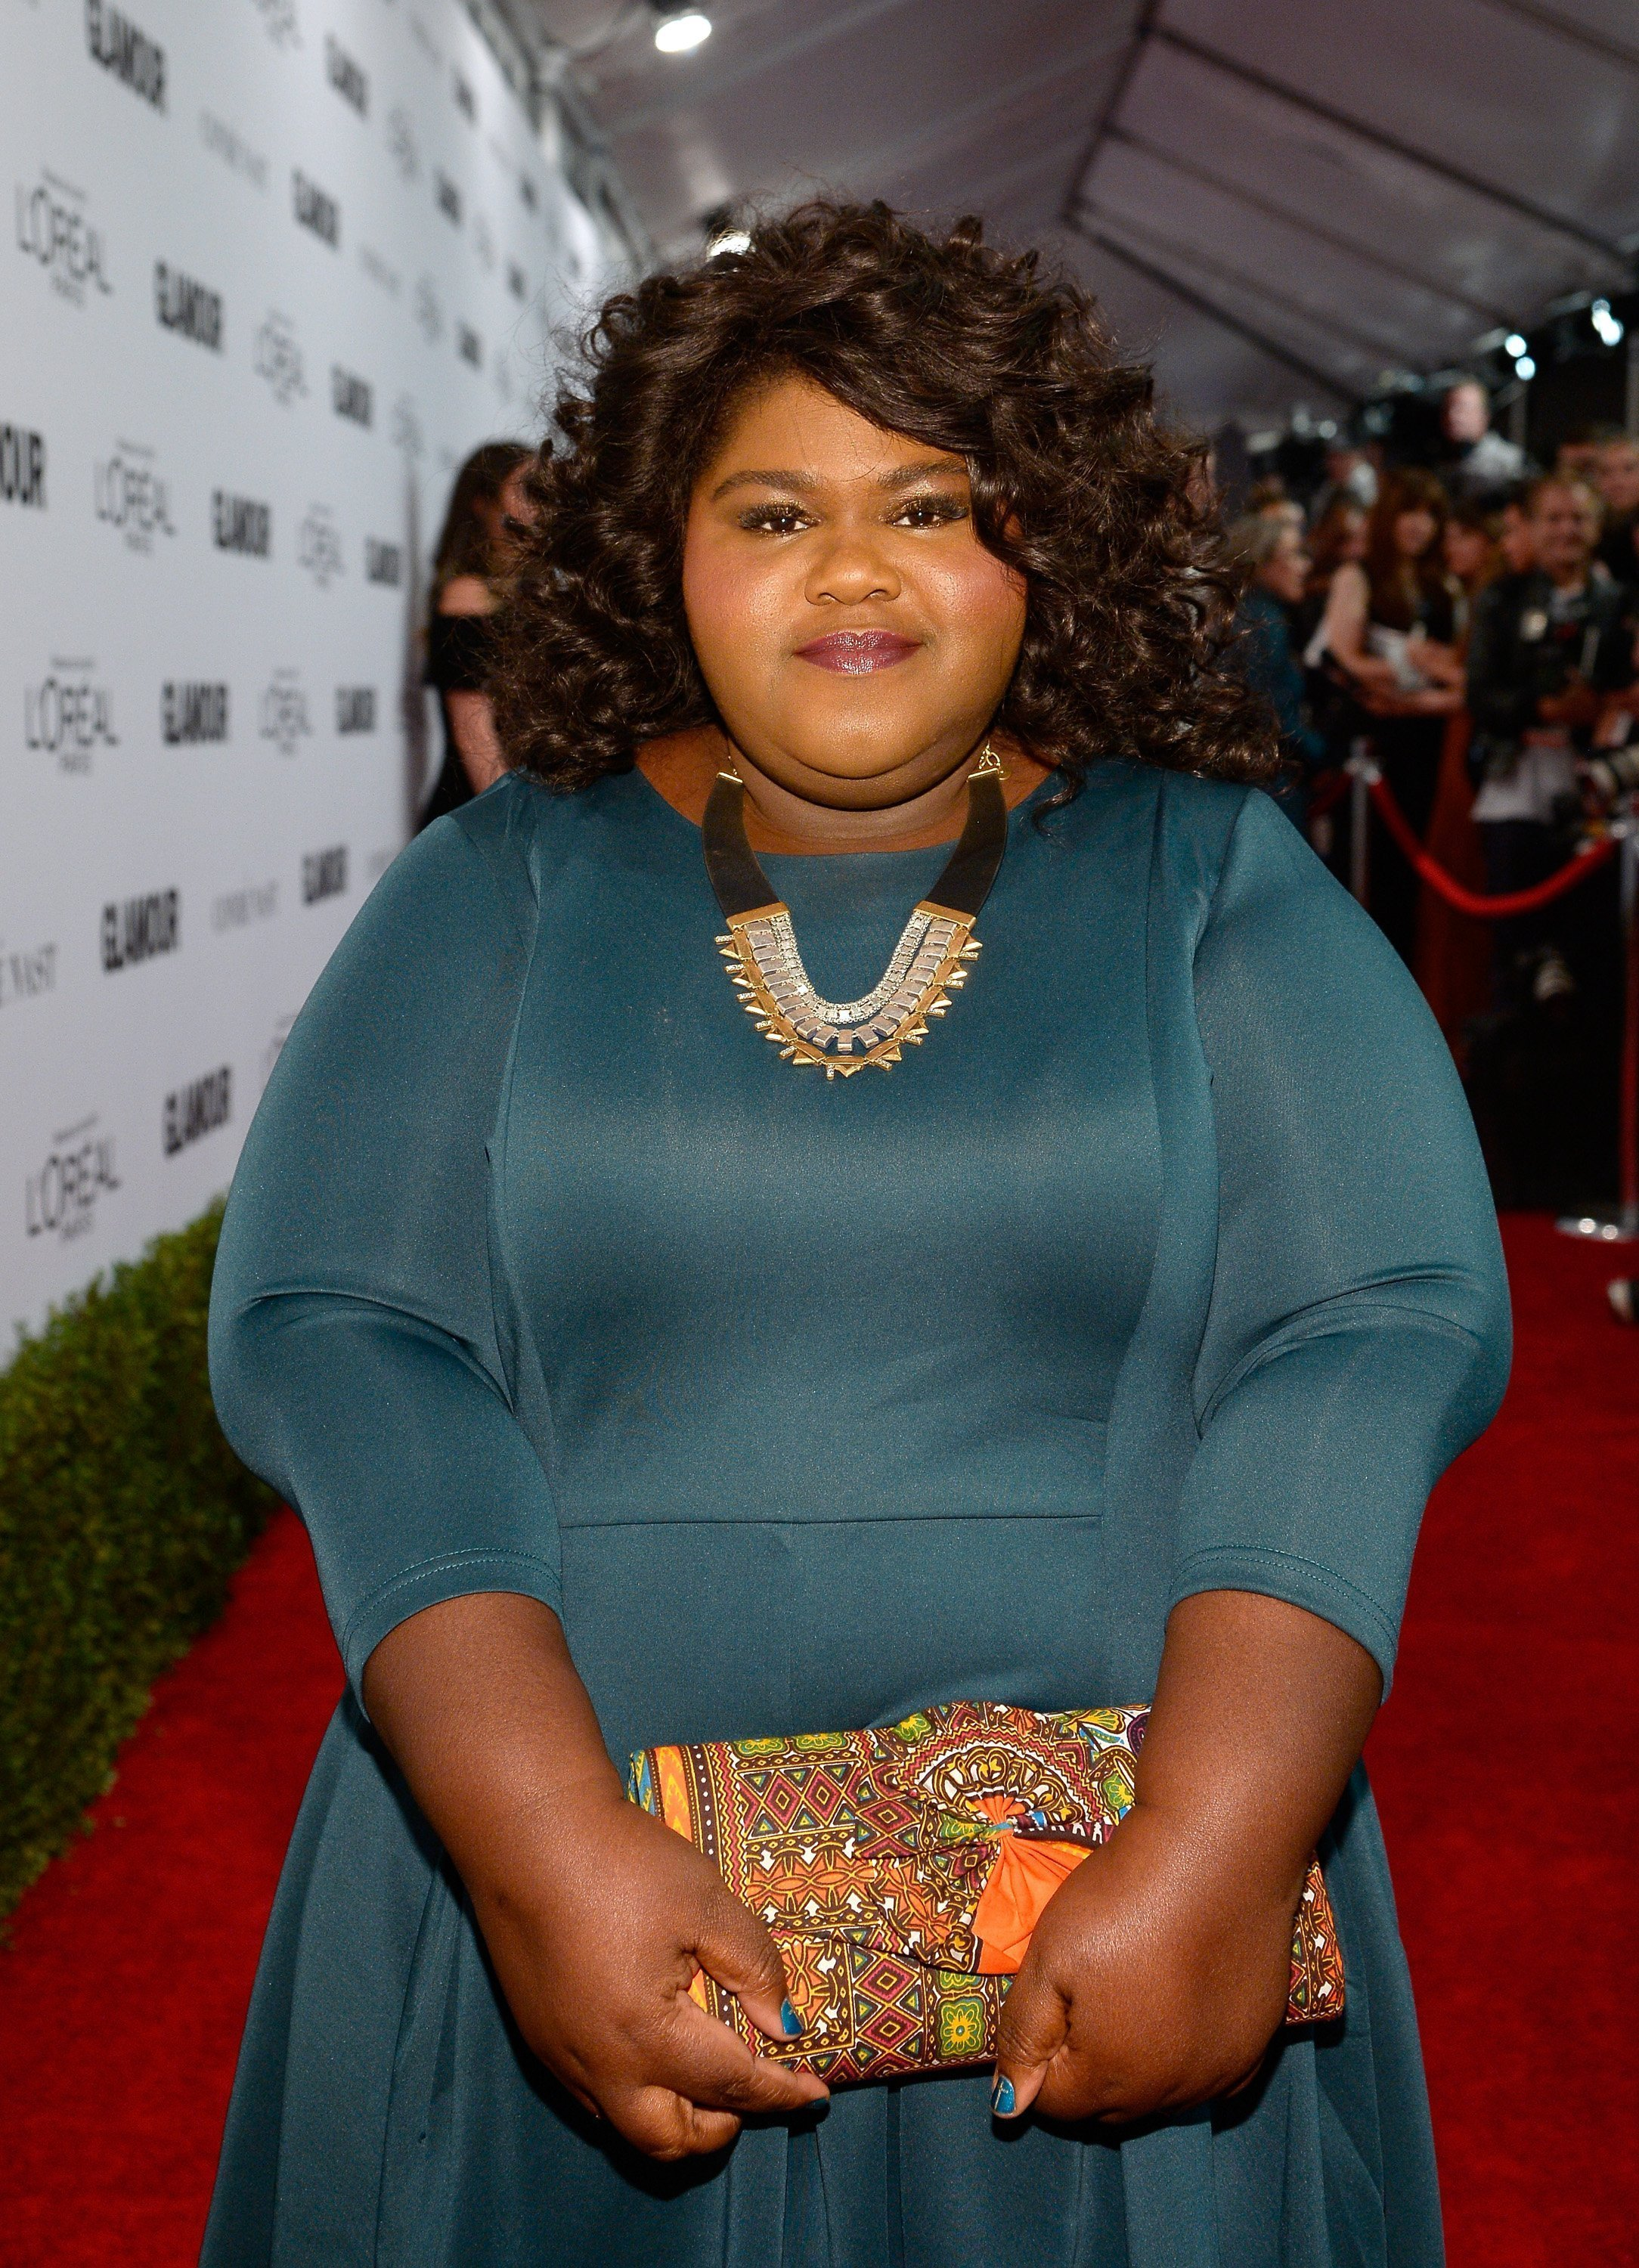 Gabby Sidibe attends Glamour Women of The Year on November 14, 2016 | Source: Getty Images/GlobalImagesUkraine